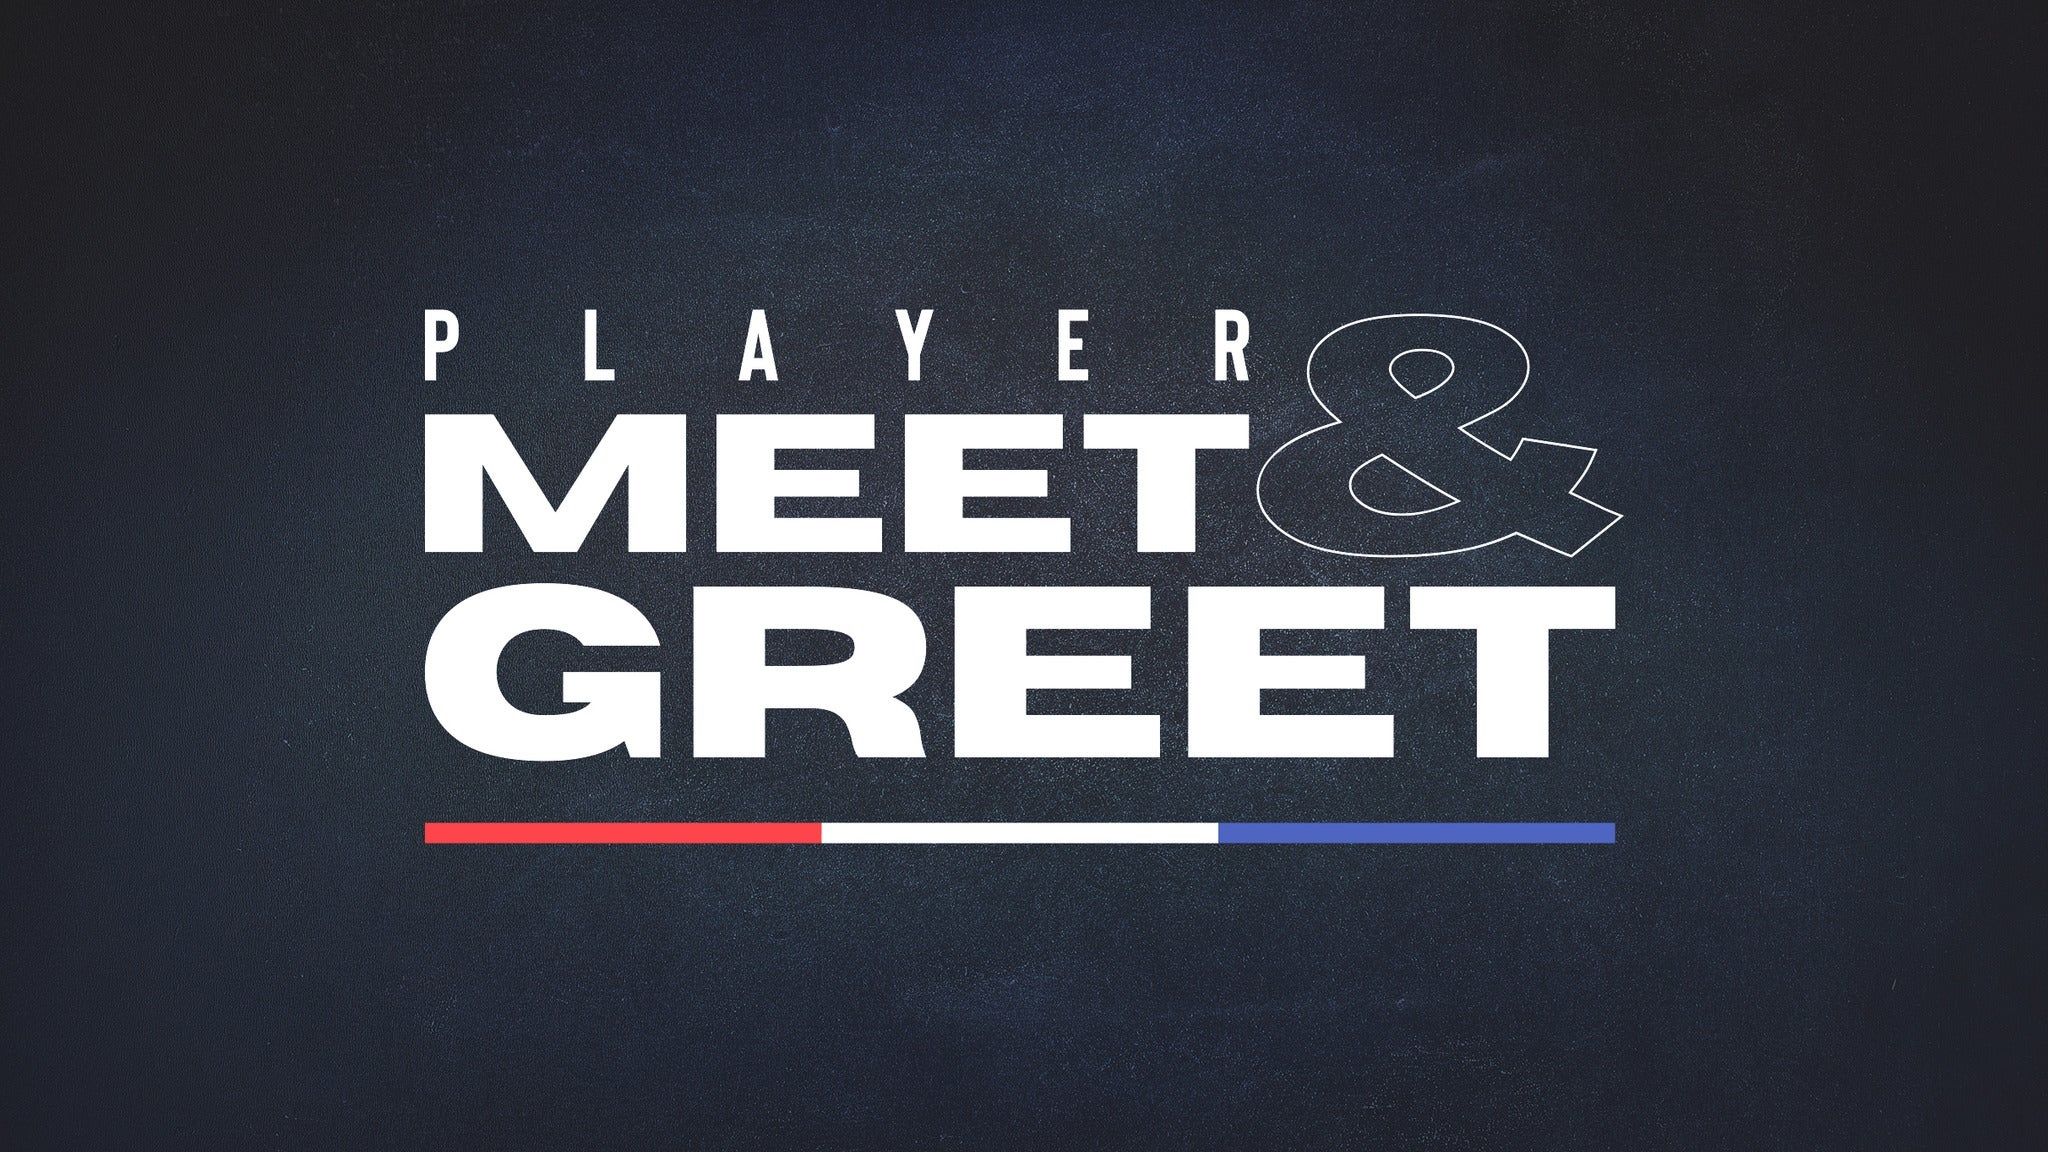 Harlem Globetrotters Player Meet & Greet presale code for early tickets in San Francisco